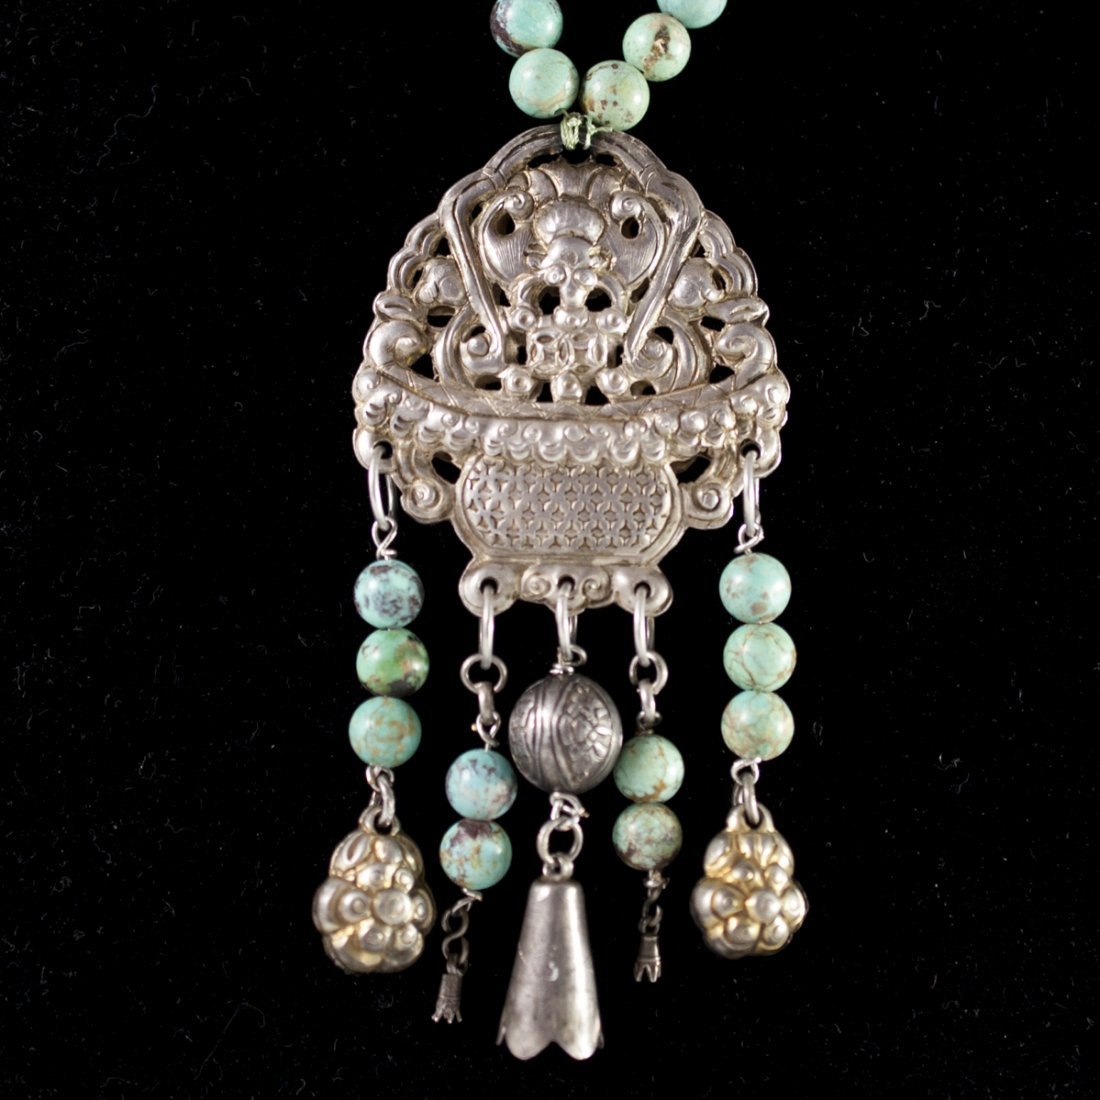 Antique Chinese Silver & Turquoise Necklace - 2